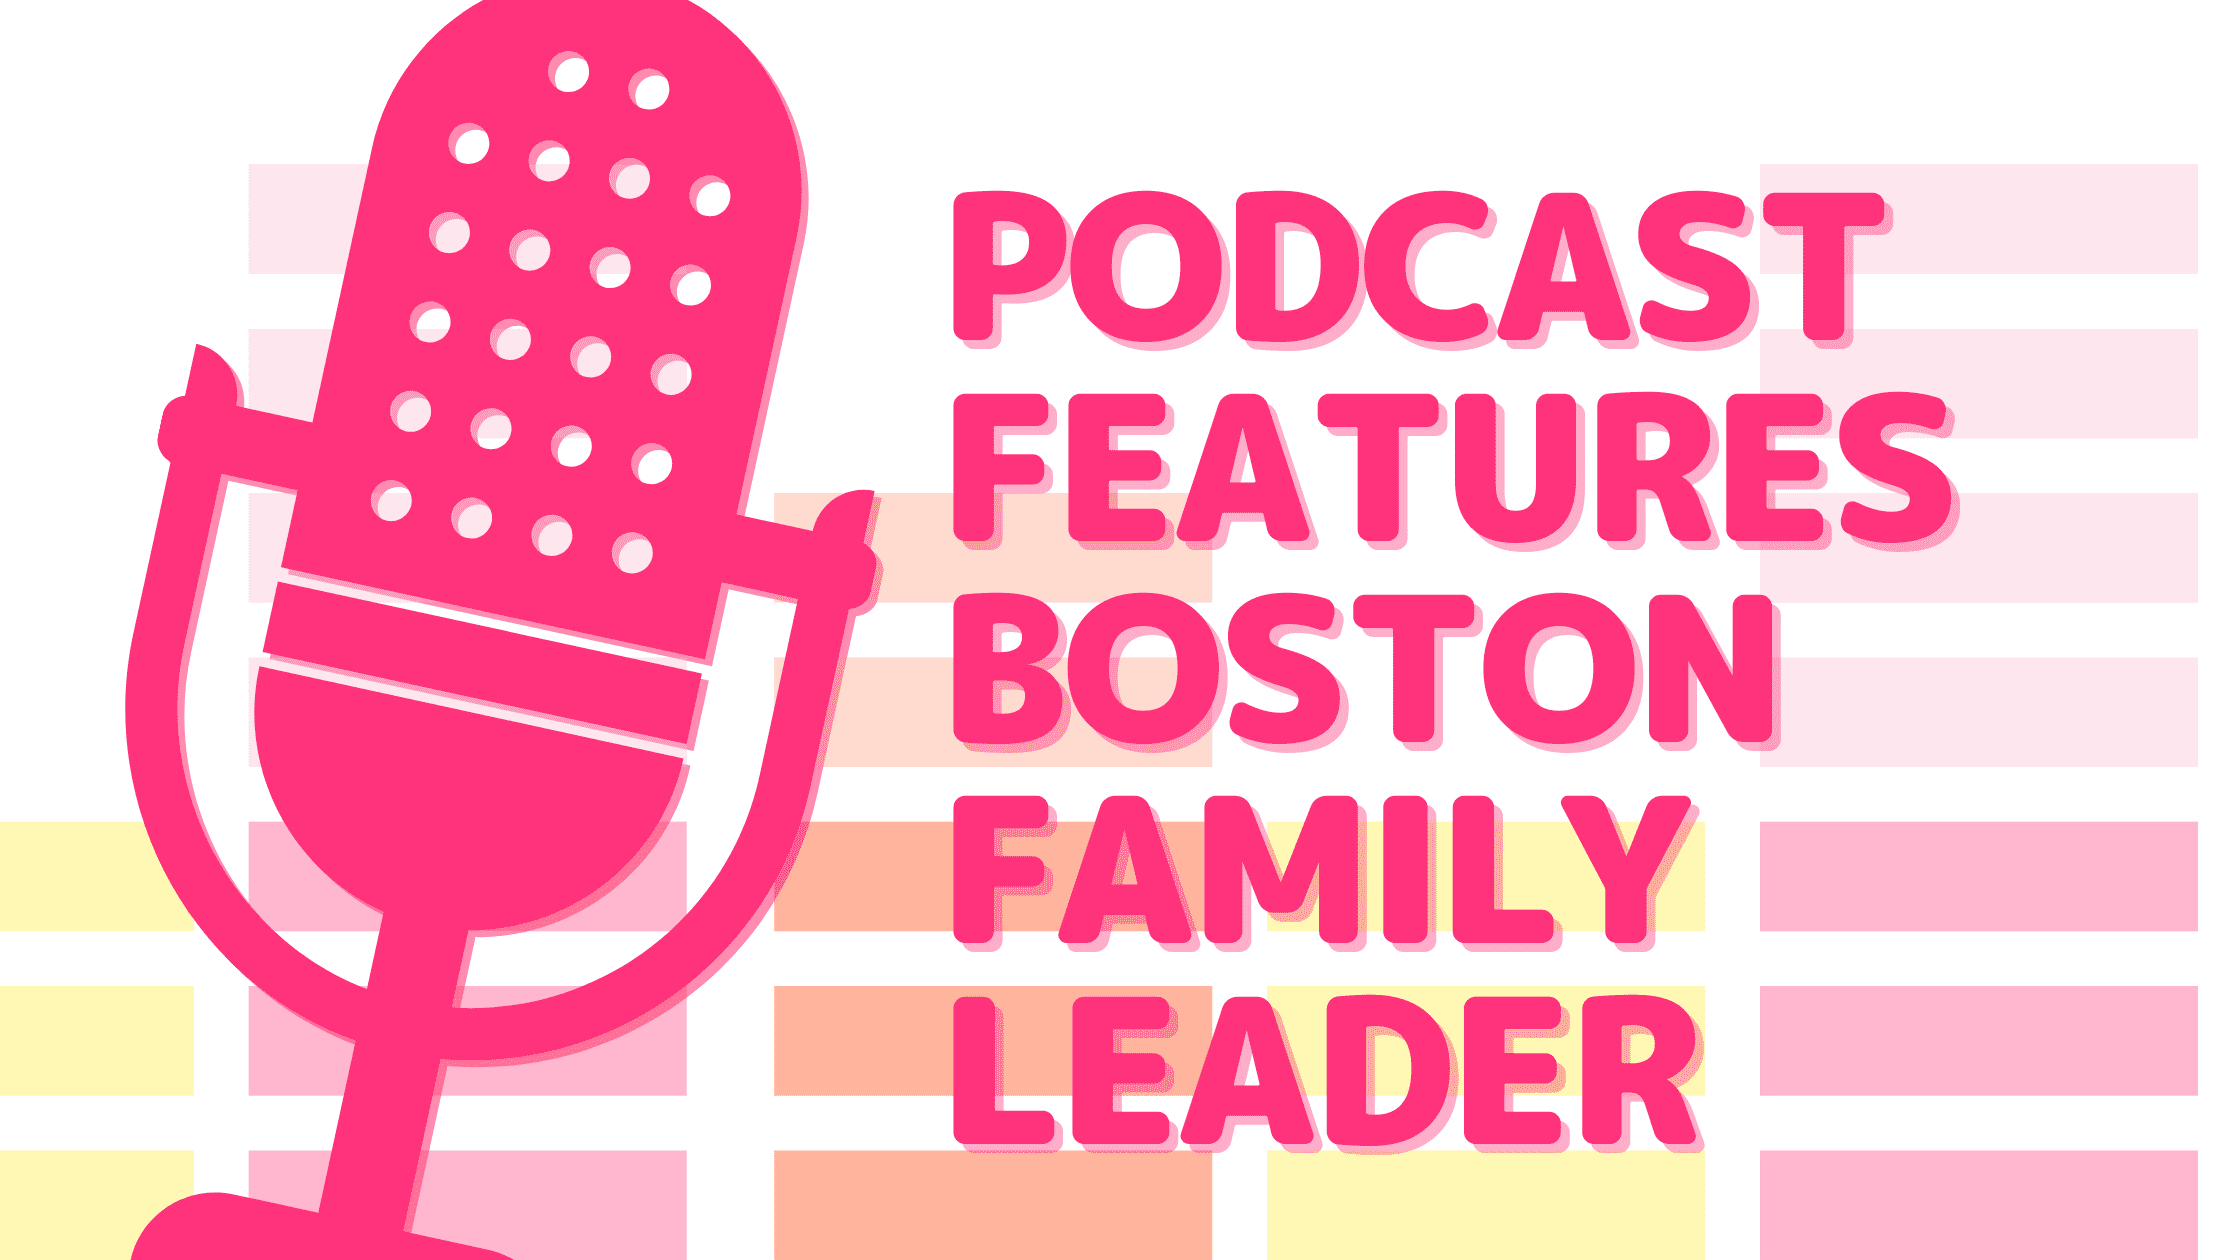 podcast features family leader